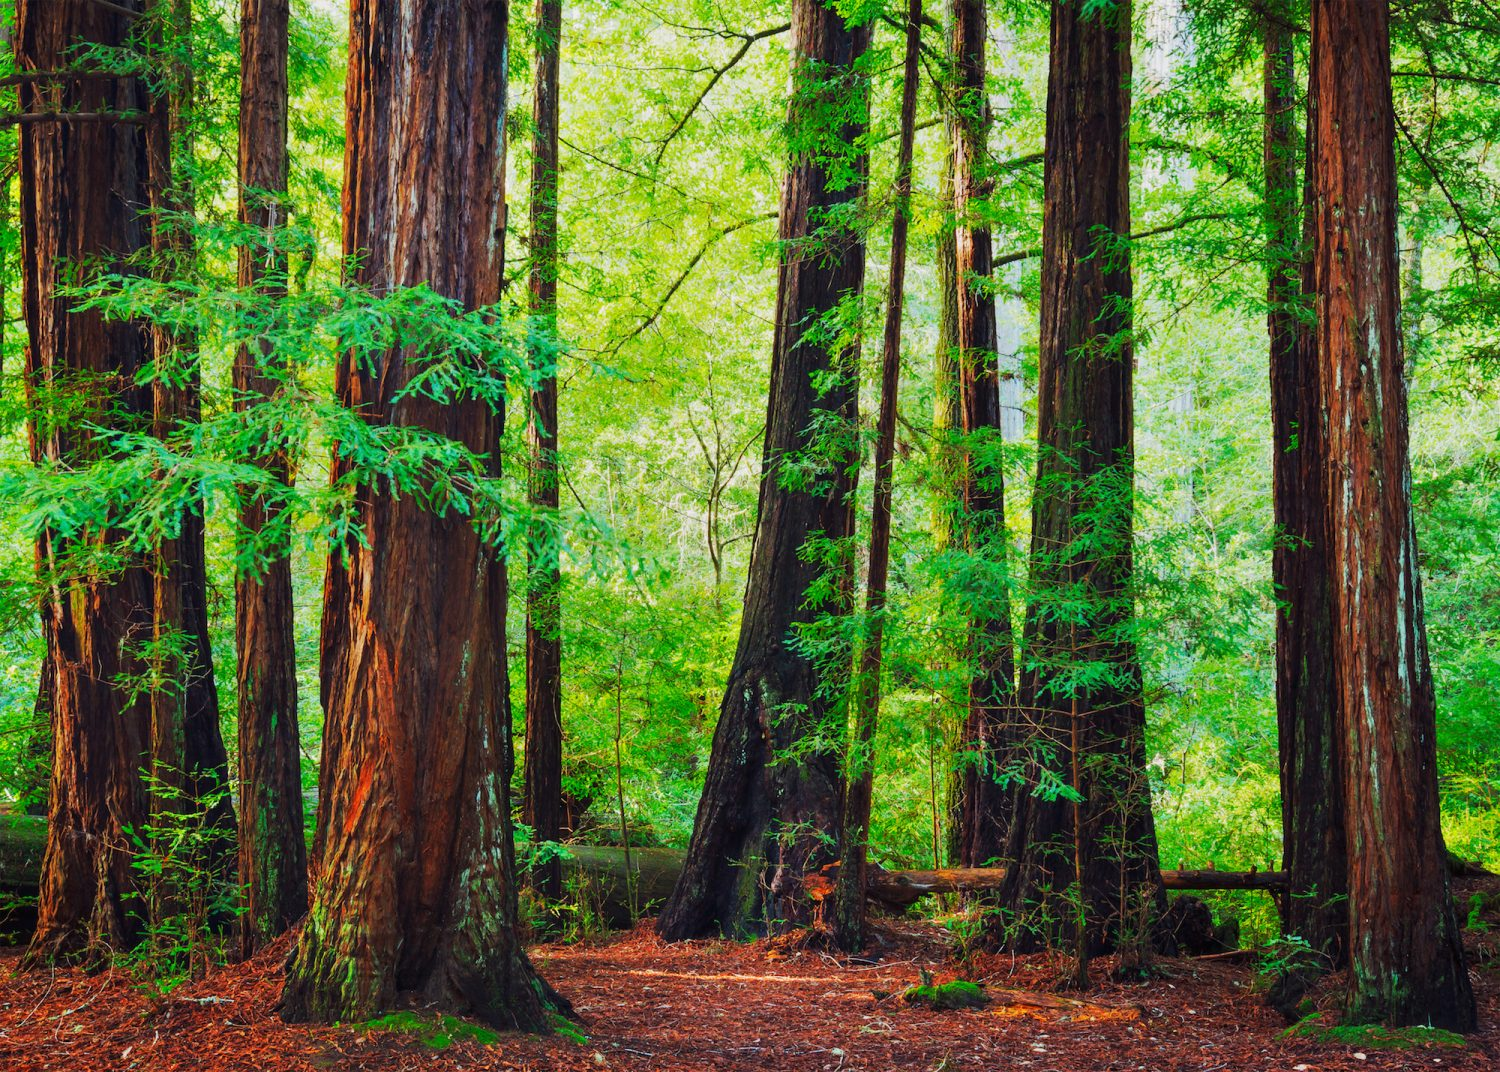 Redwood Trees in Forest, Northwest Rain Forest